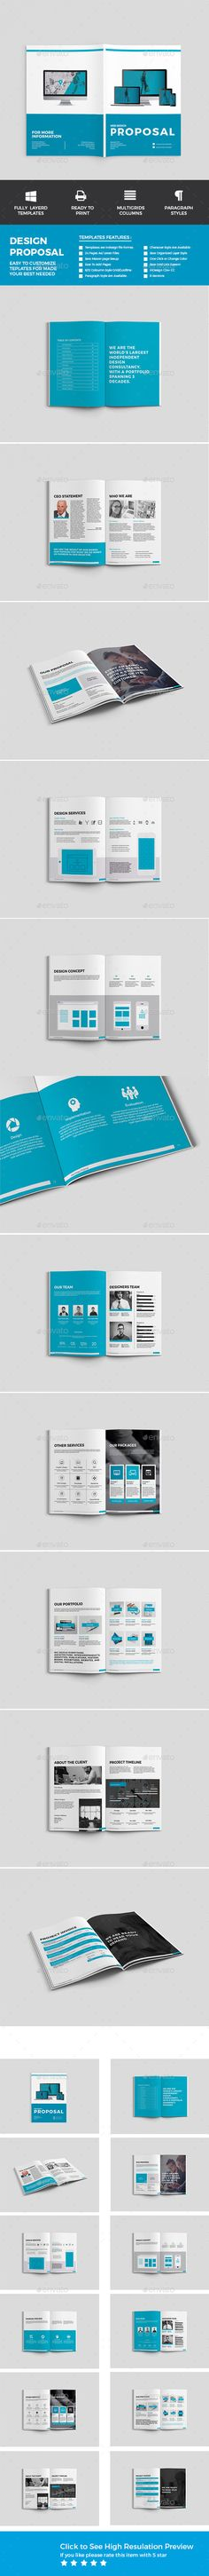 Social Media Business Solution Proposals and Brochures - price proposal template